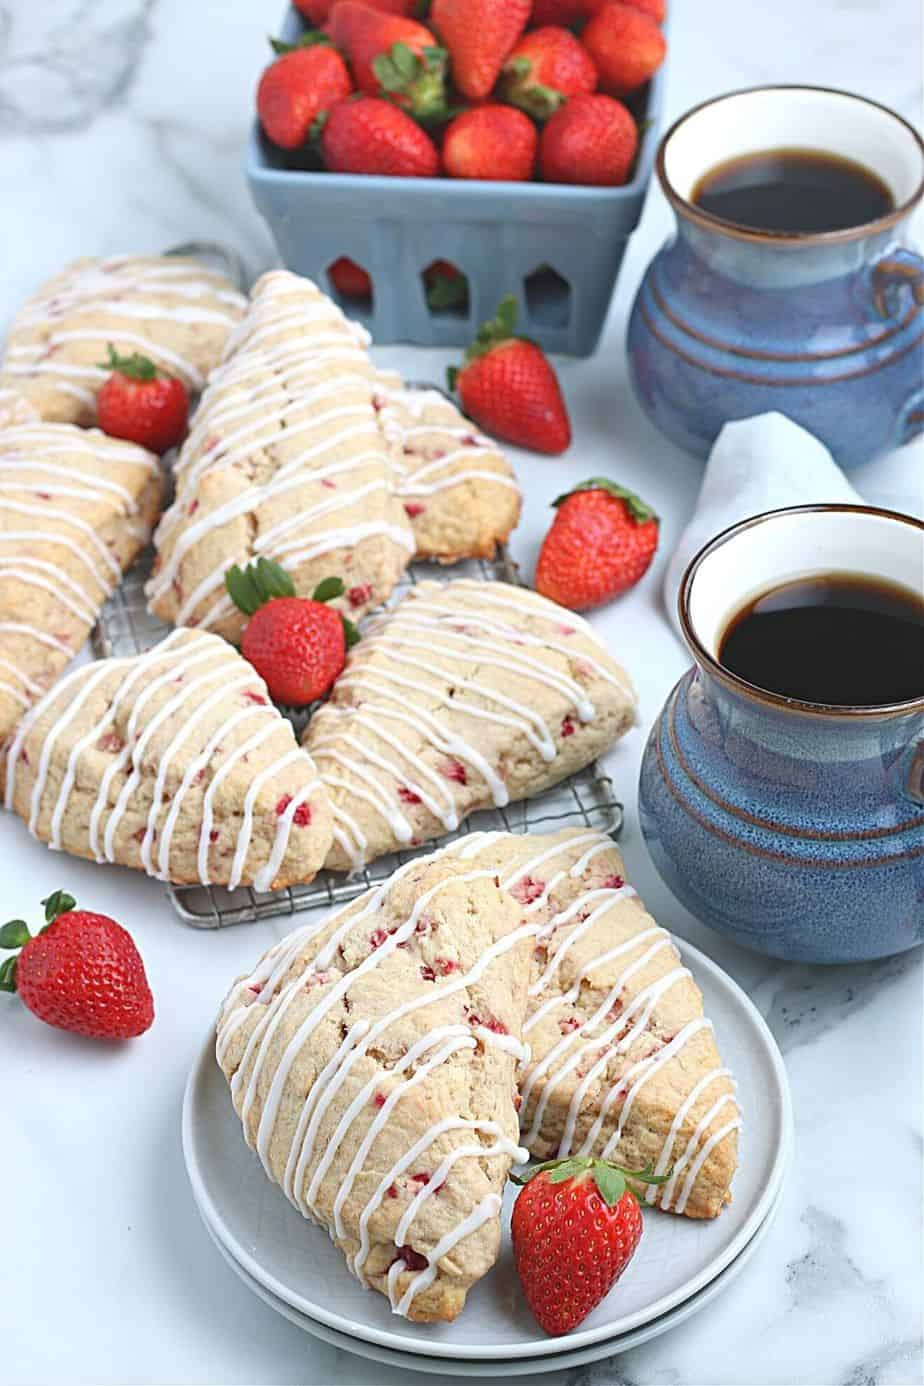 Impress your family with homemade baked goods that they can have for breakfast or a snack. This Strawberry Scones recipe is fun to make and will stay fresh for several days. These fresh-baked scones are soft, flaky and bursting with juicy strawberries! This is also a great freezer friendly recipe. Bake a batch of these fresh strawberry scones and freeze to enjoy at a later time.